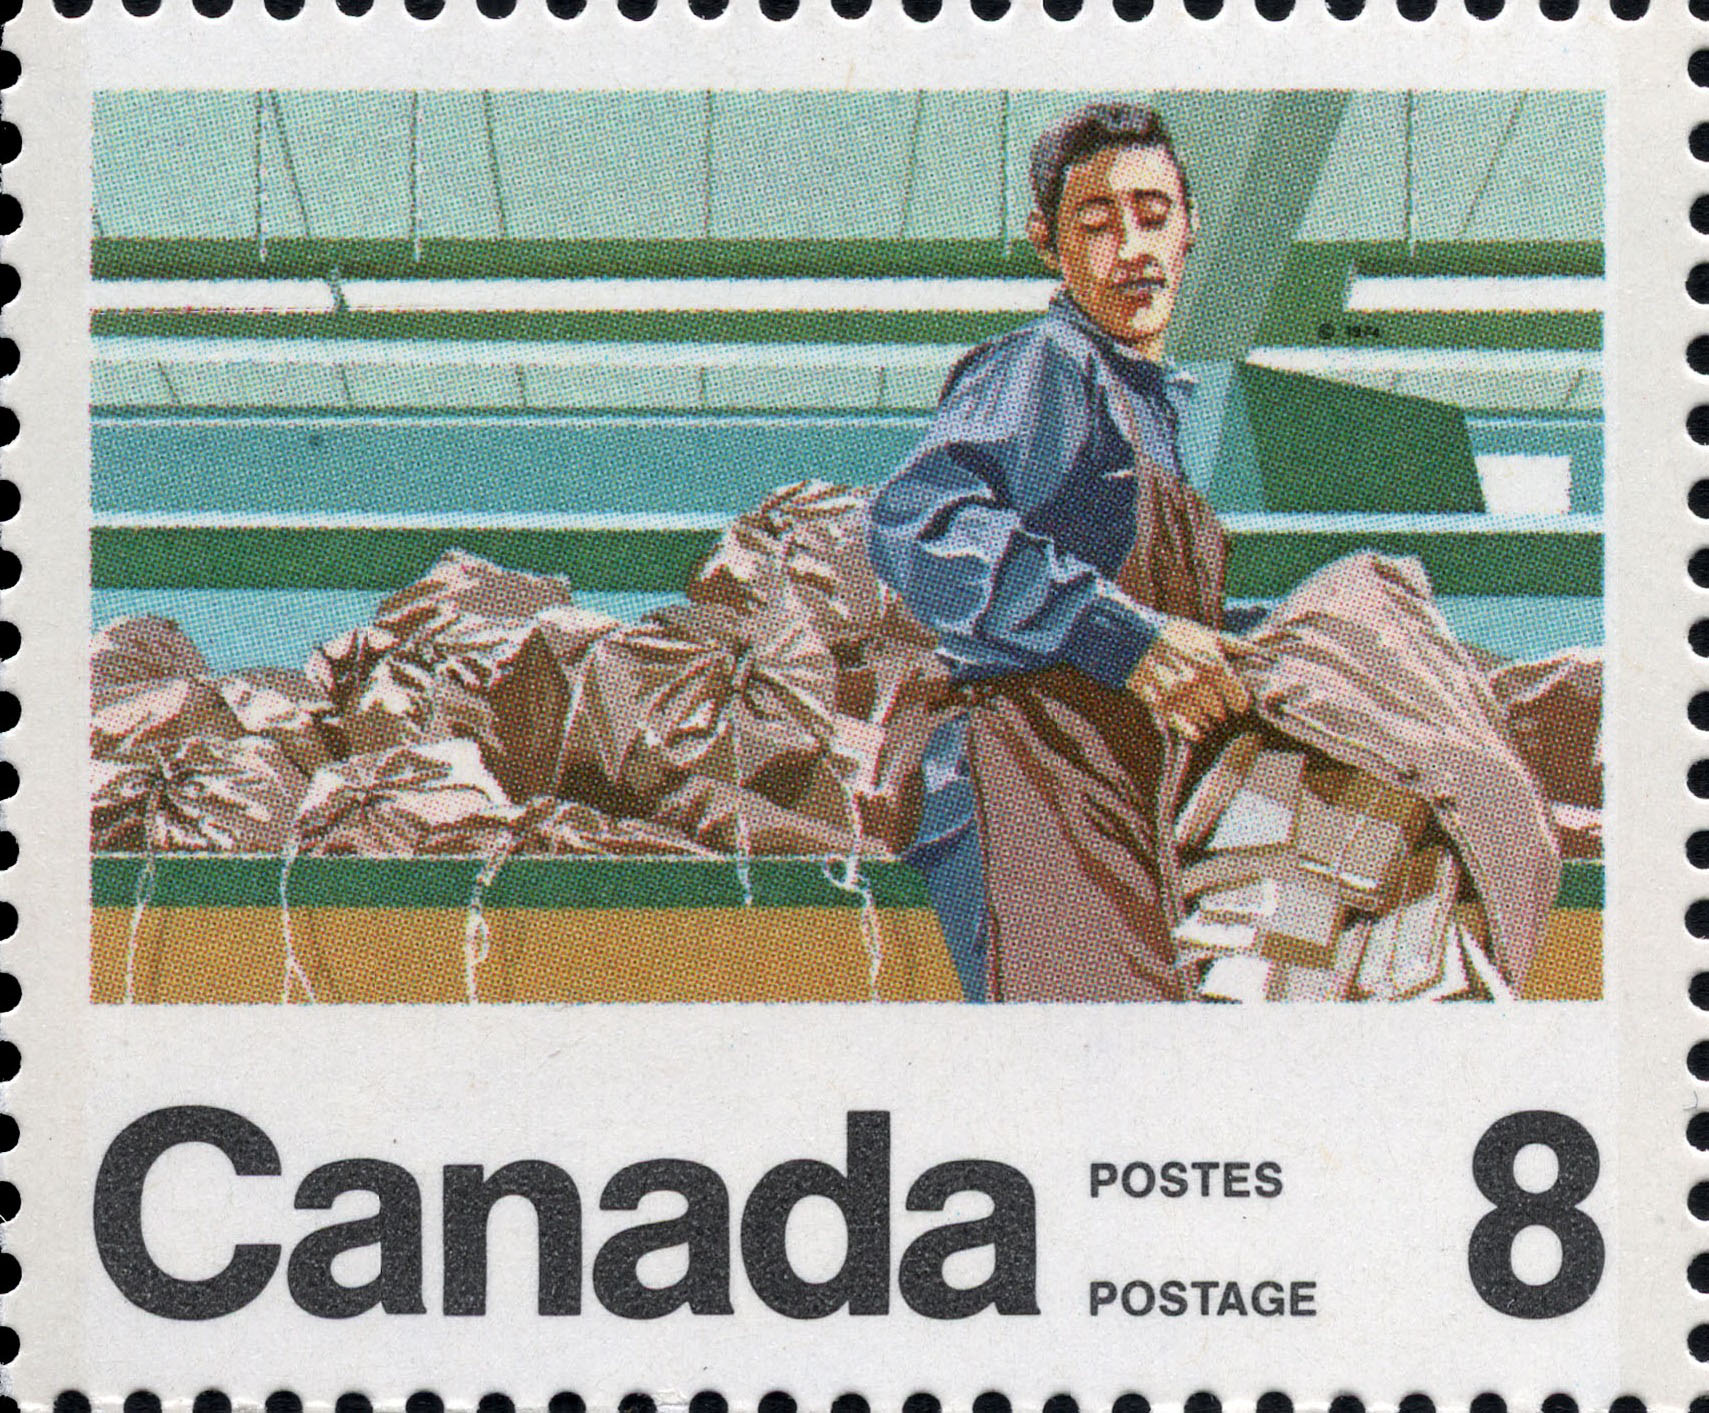 Mail Handler Canada Postage Stamp | Centenary of the Letter Carrier Delivery Service